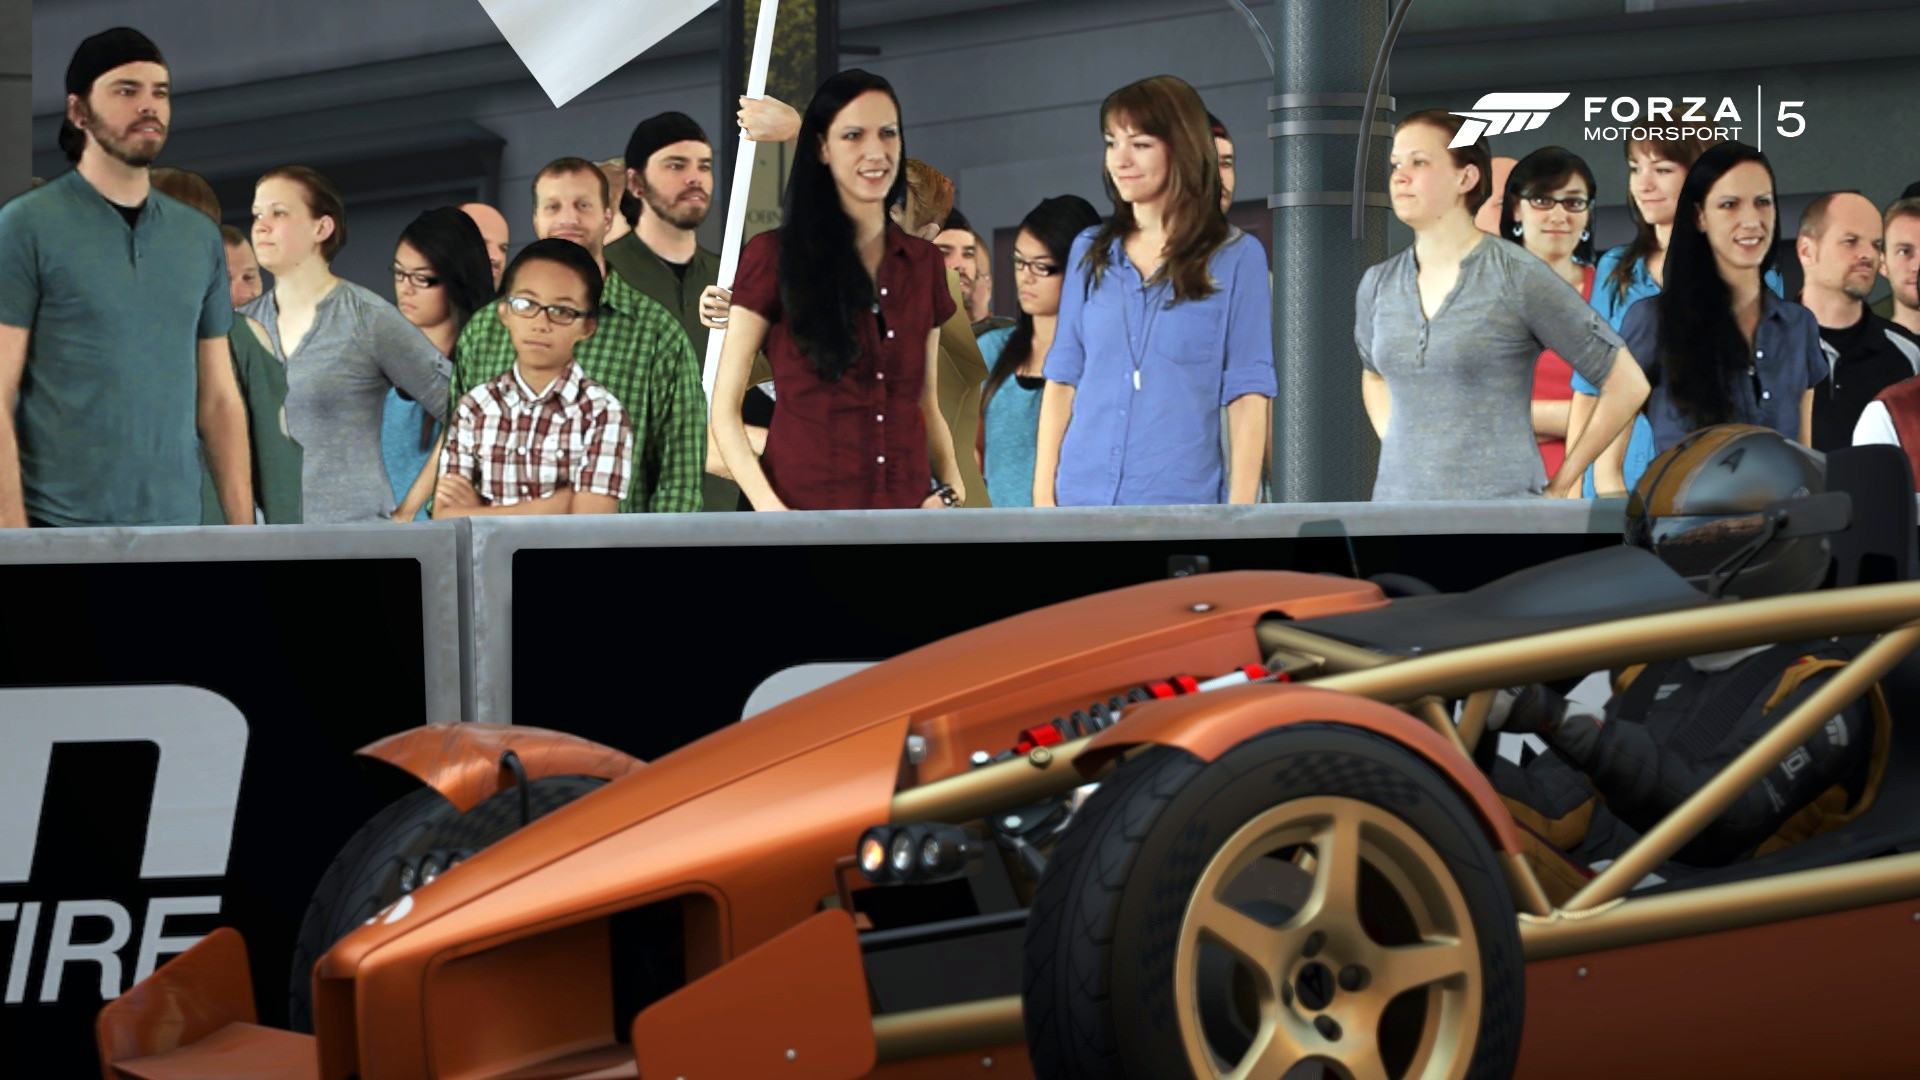 The People of Forza 5: A Study